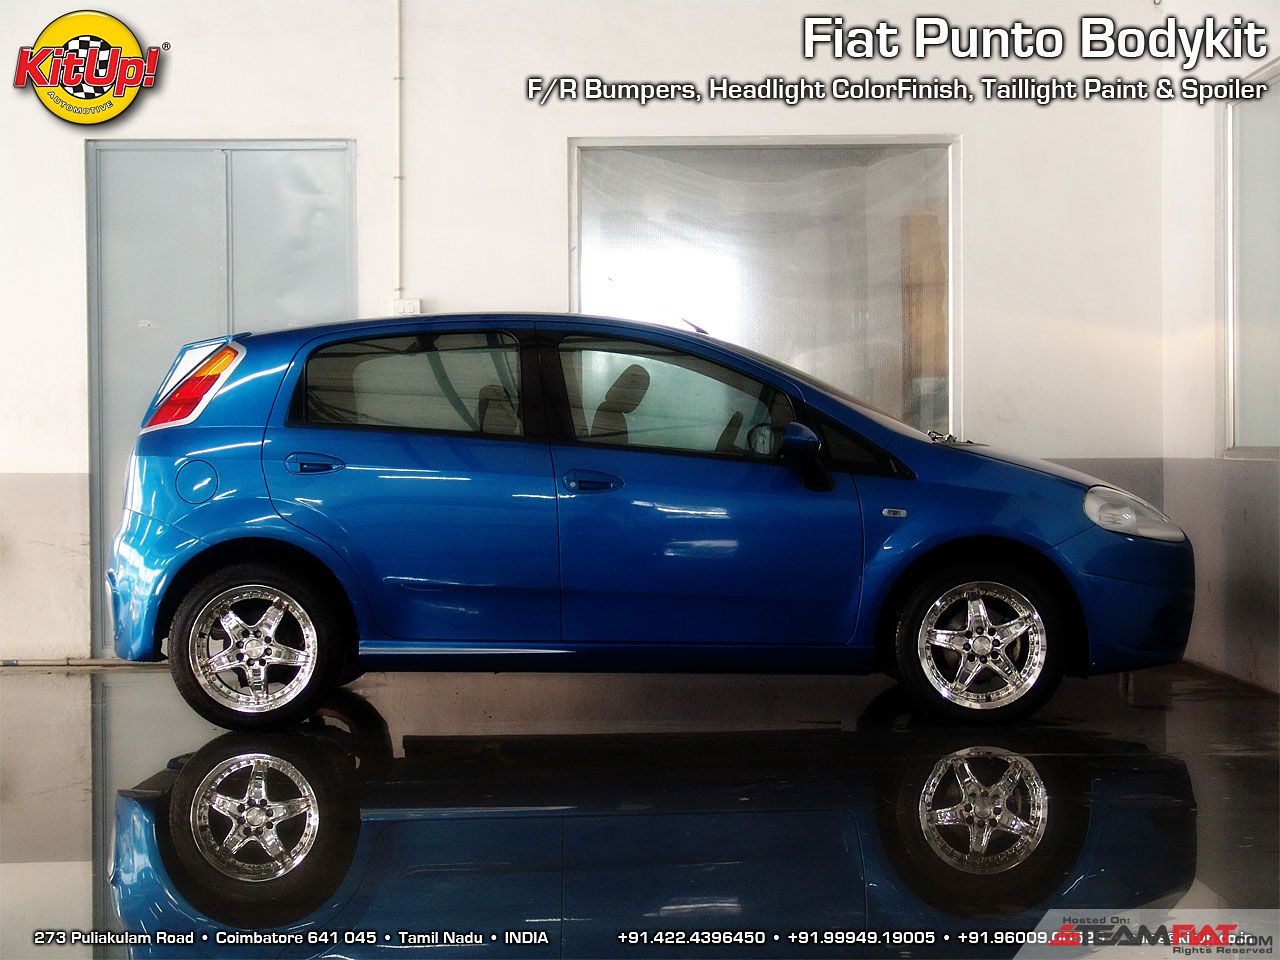 Punto-Bodykit1-5of8.jpg